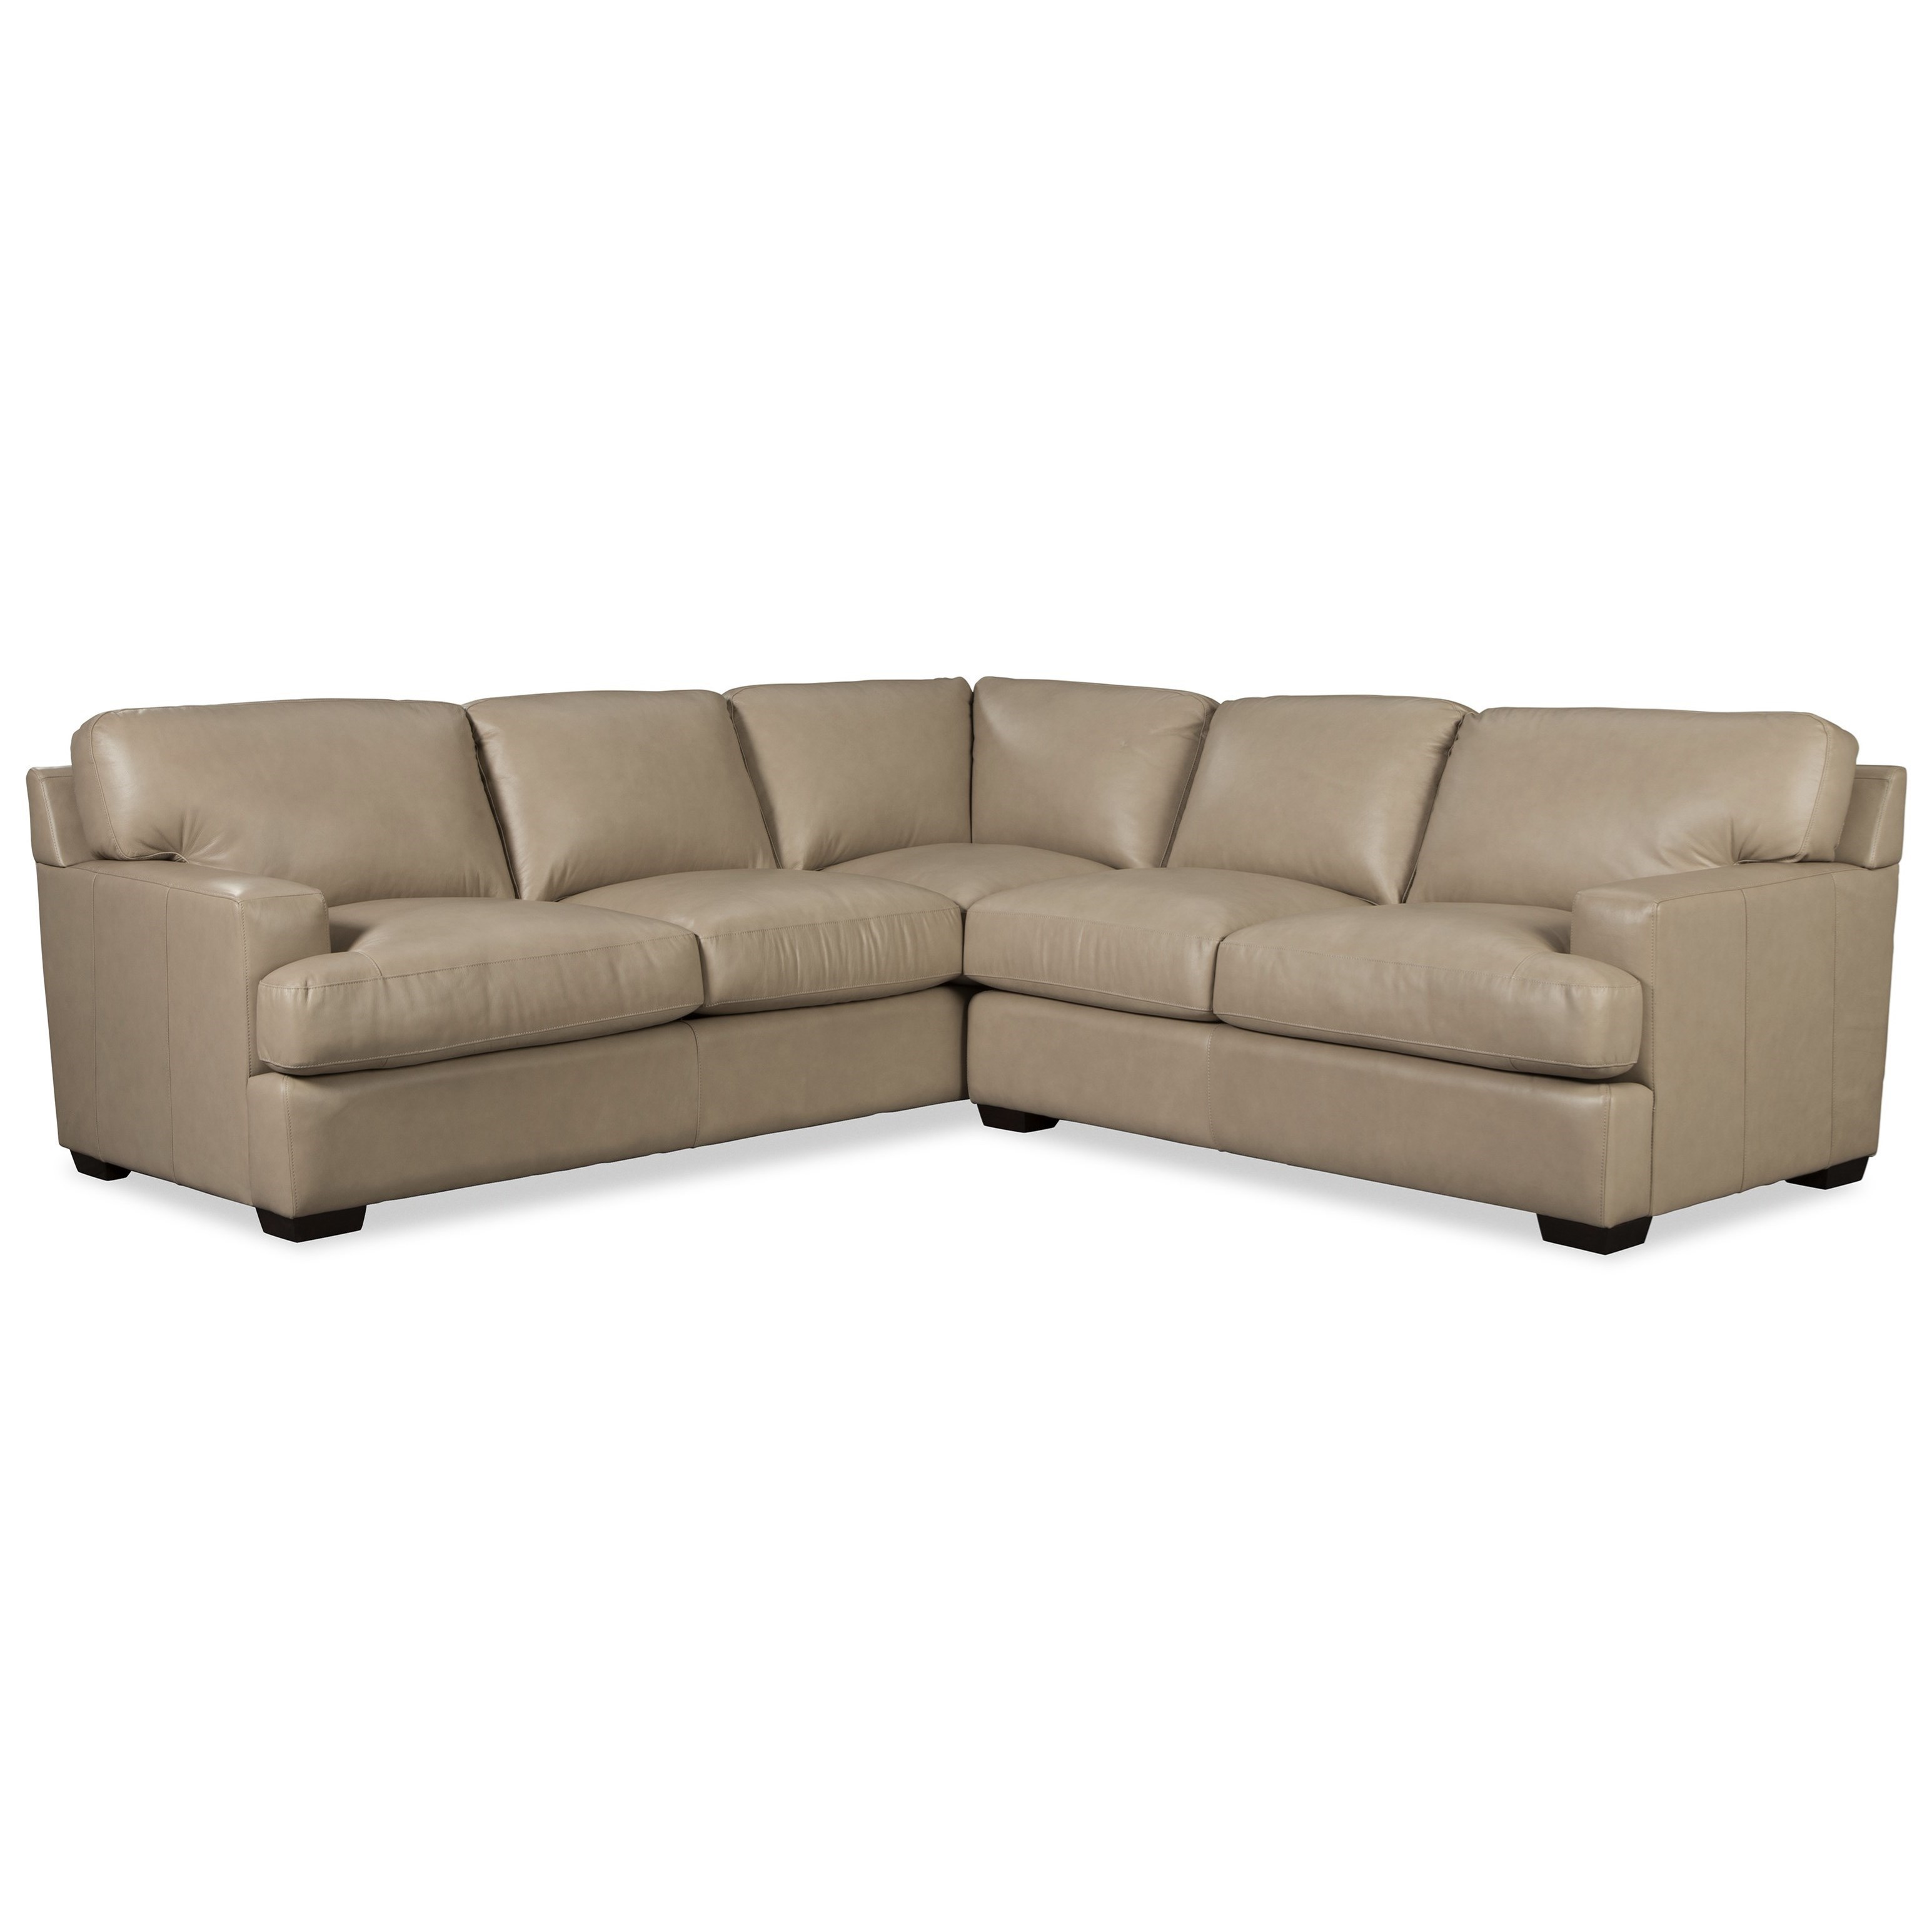 Sectional Sofas In Hickory Nc: Hickory Craft L187156 Two Piece Leather Sectional Sofa